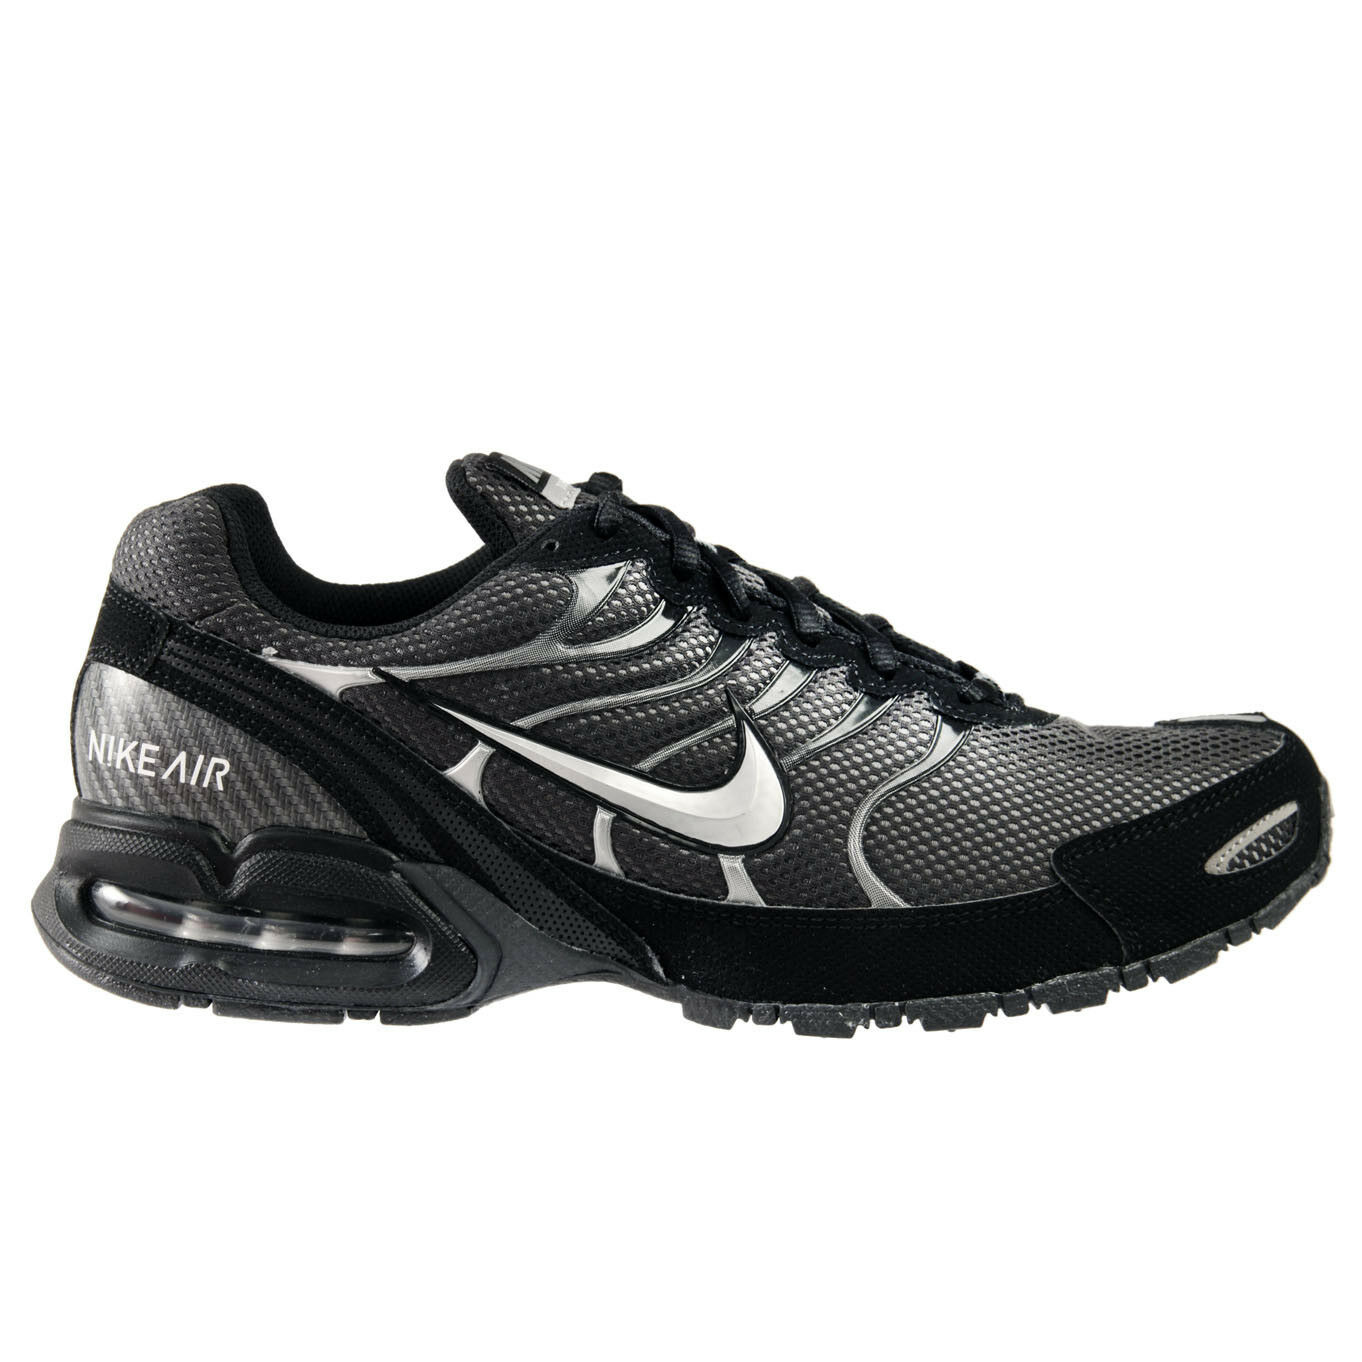 Nike Air Max Torch 4 Running Mens 343846-002 Black Anthracite Running 4 Shoes Size 12 7a252f